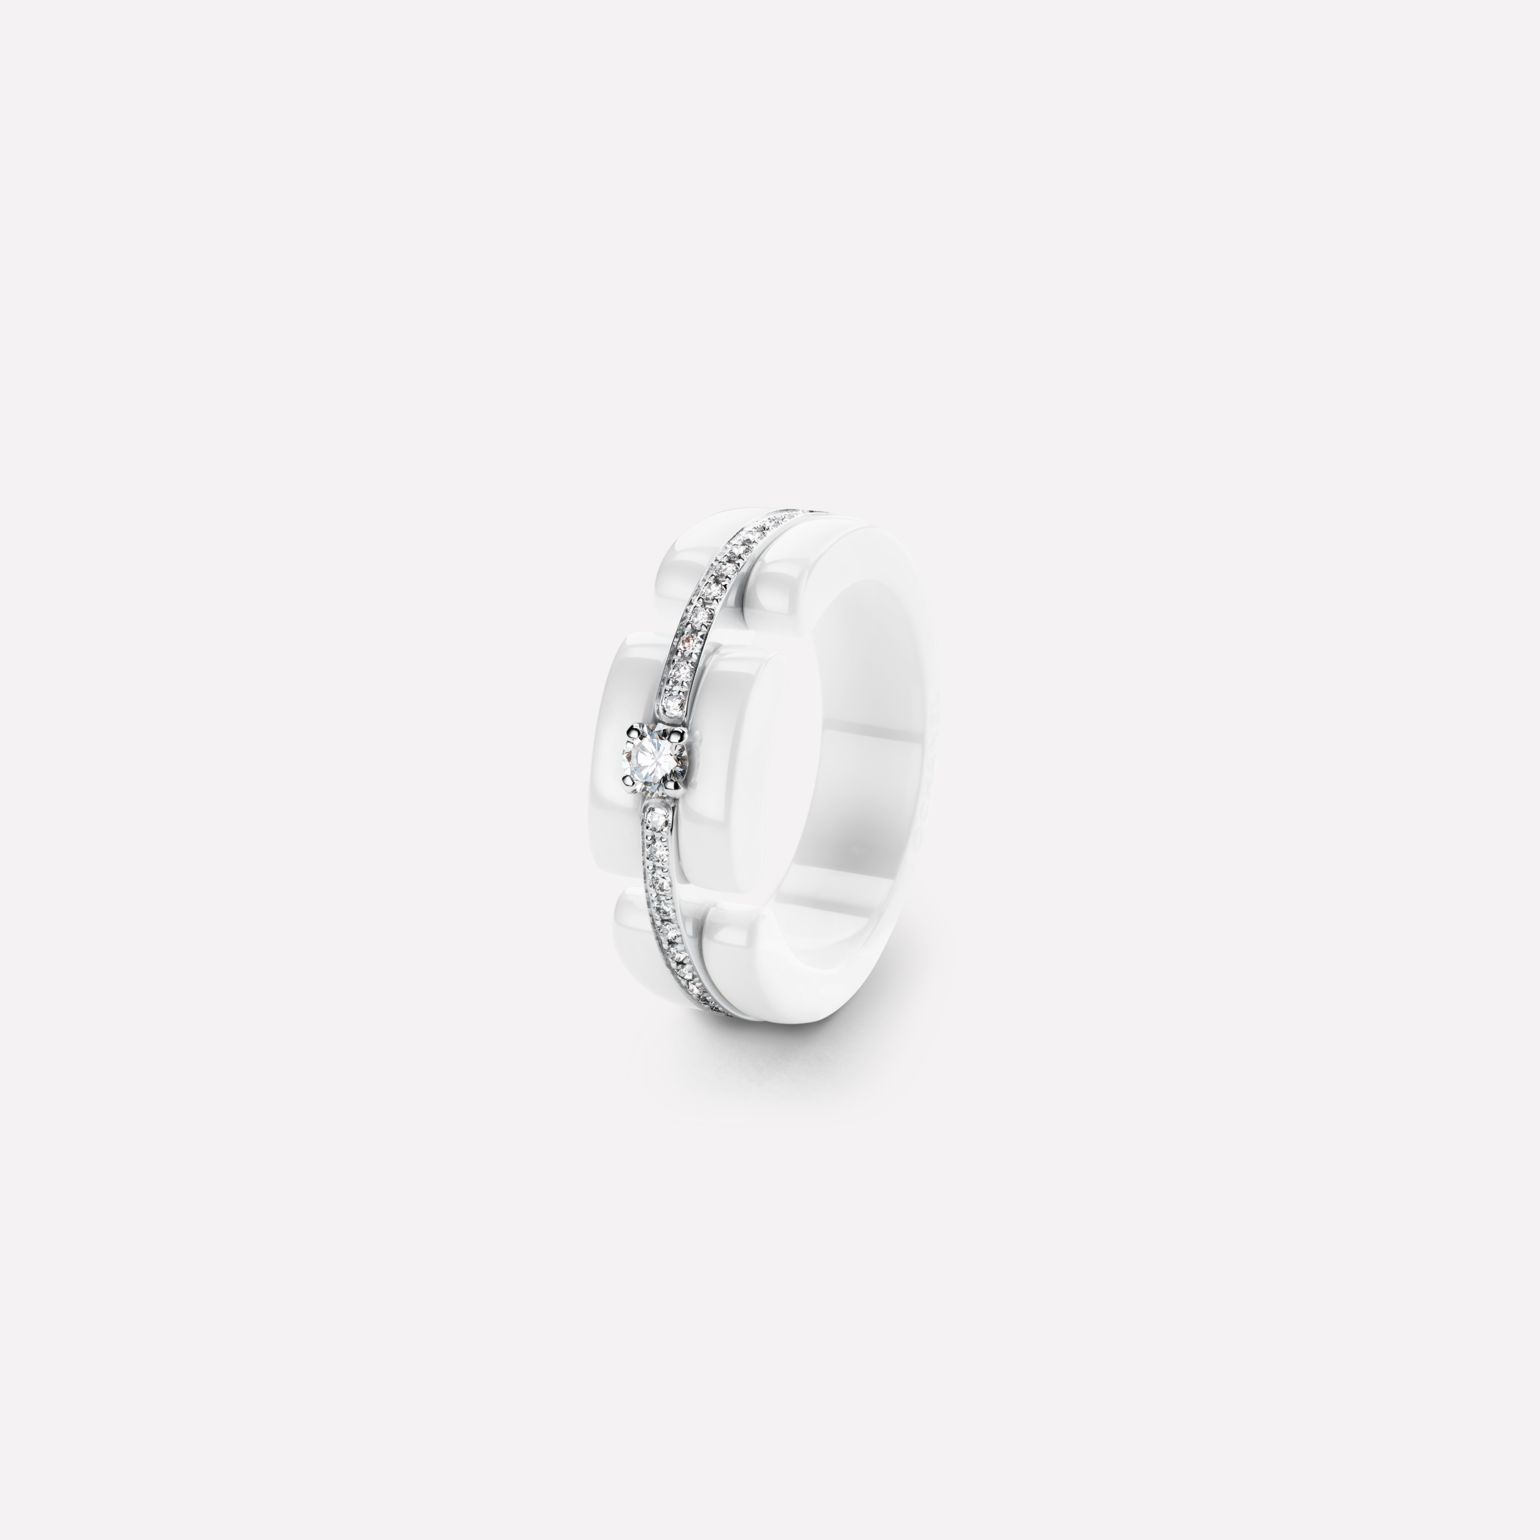 Ultra ring Ultra ring, medium version, in white ceramic, 18K white gold and diamonds with one center diamond